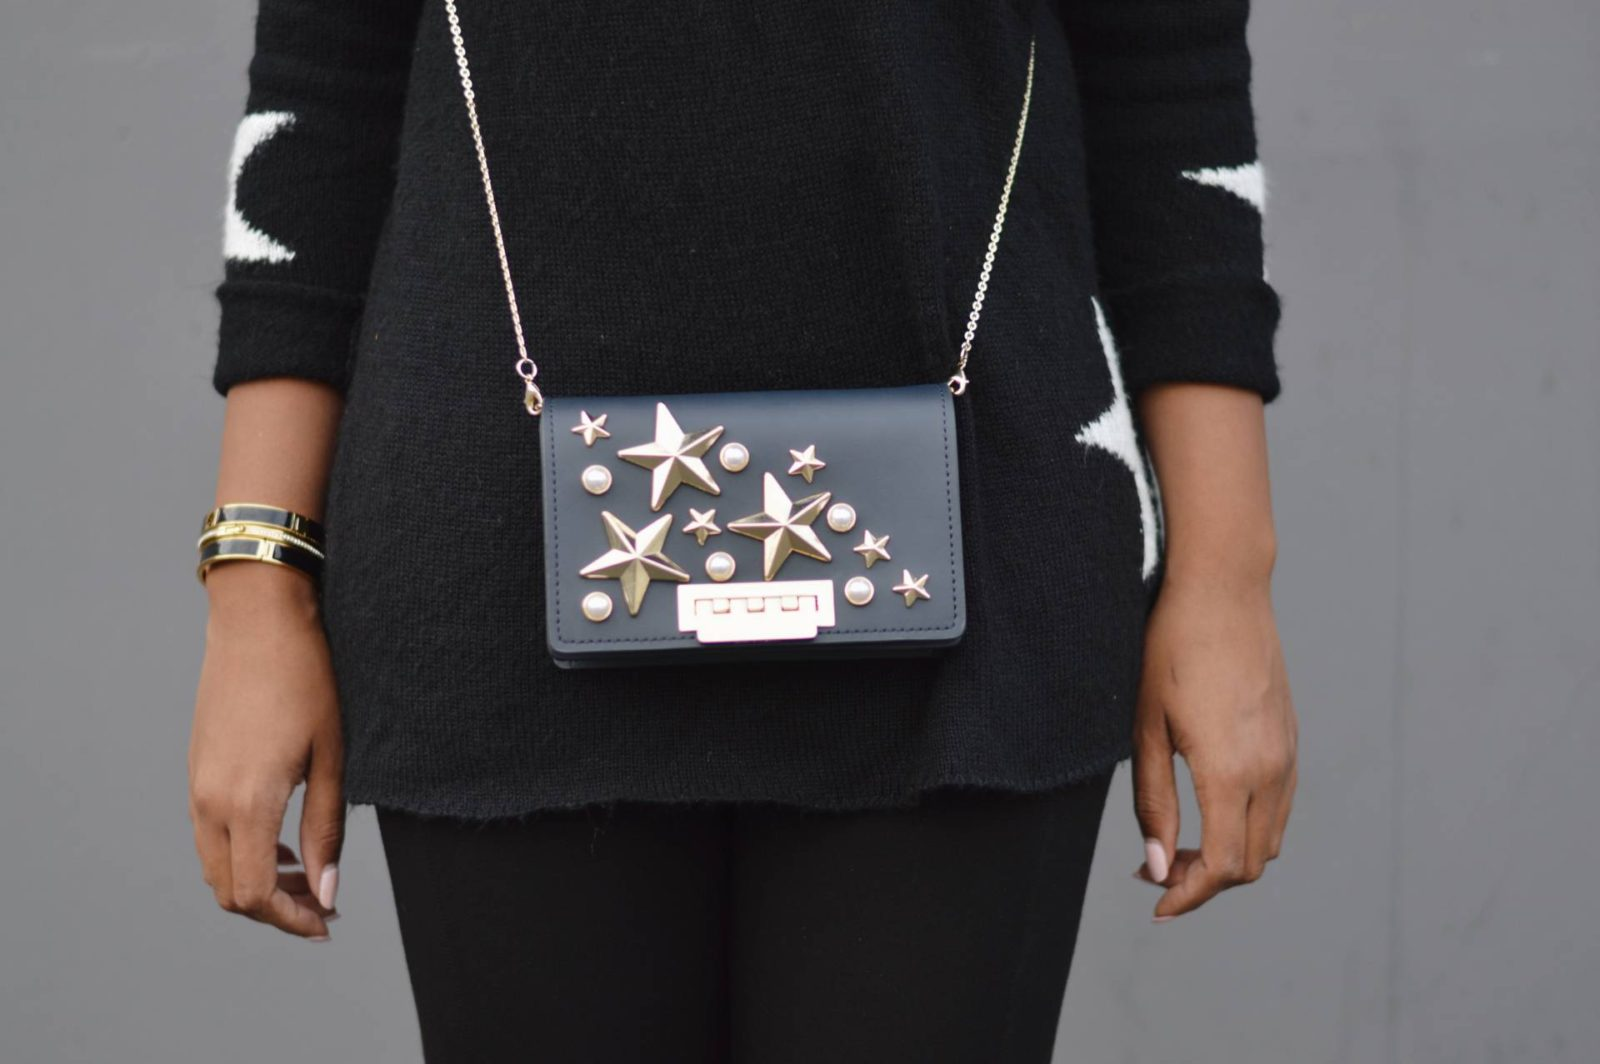 Star Print Fashion Trend Purse- Le Fab Chic